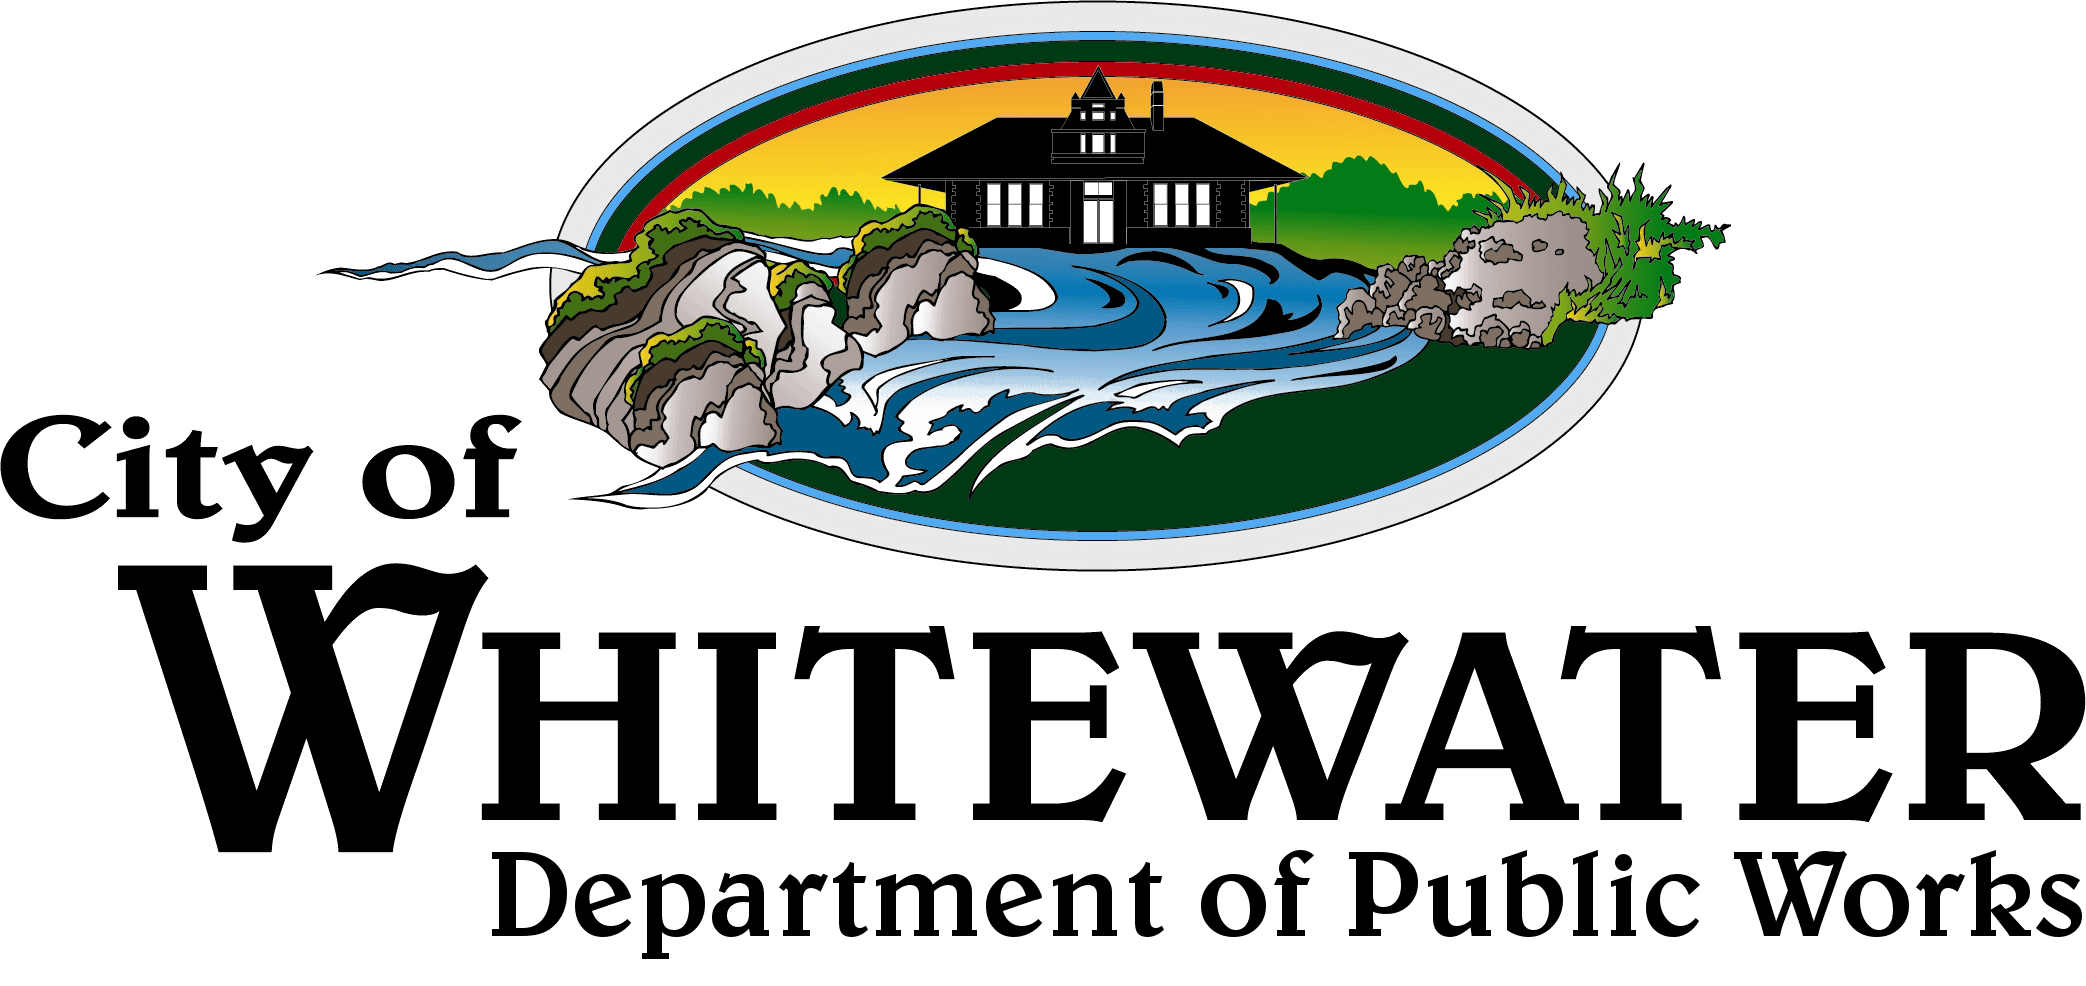 City of Whitewater Transparent Department of Public Works